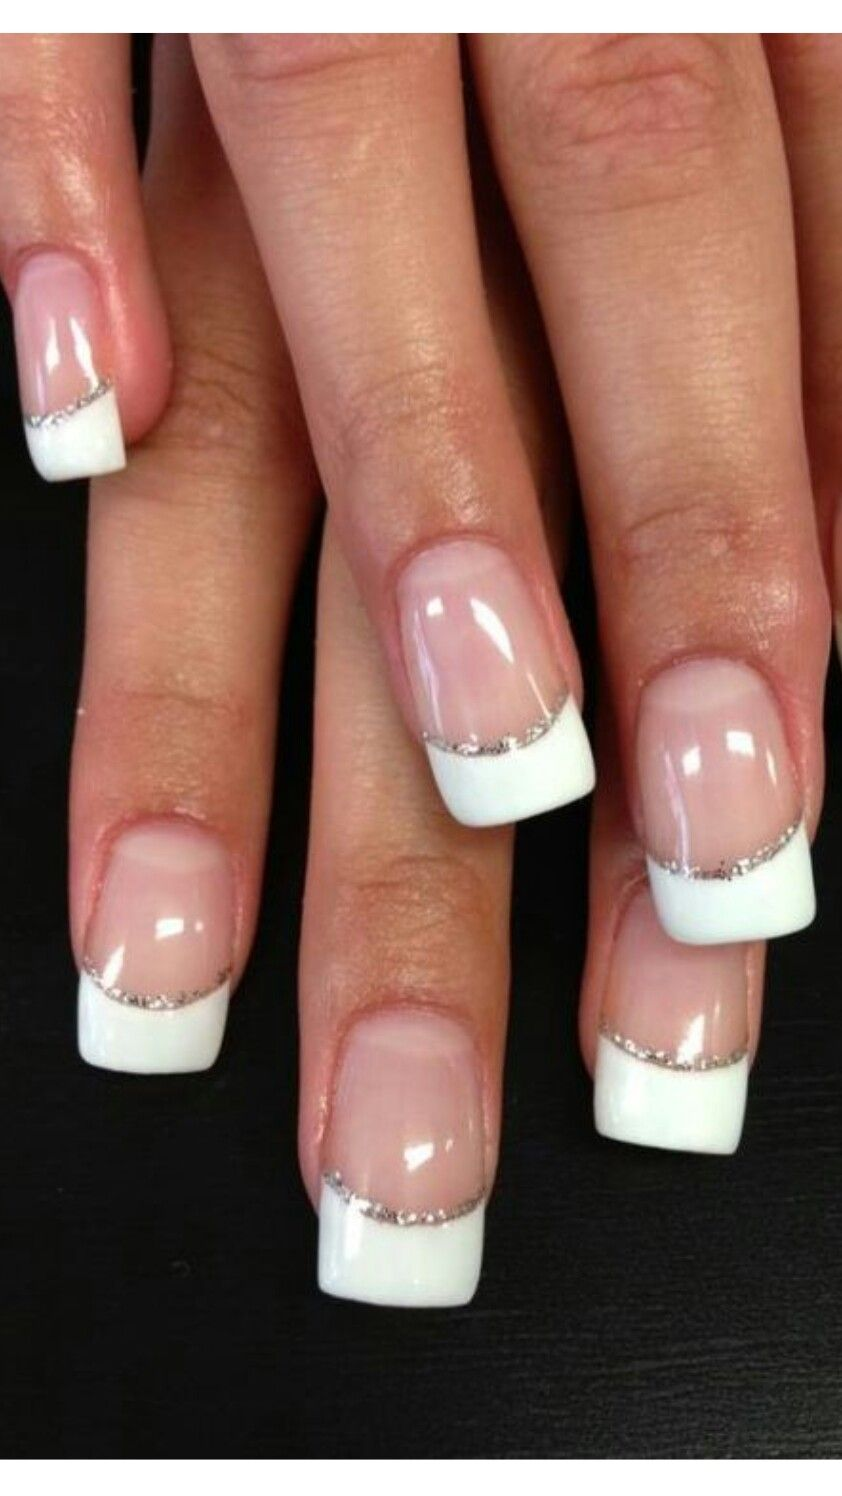 Pin by Kymberlee Kuhse on Nails | Pinterest | Wedding, Wedding and ...